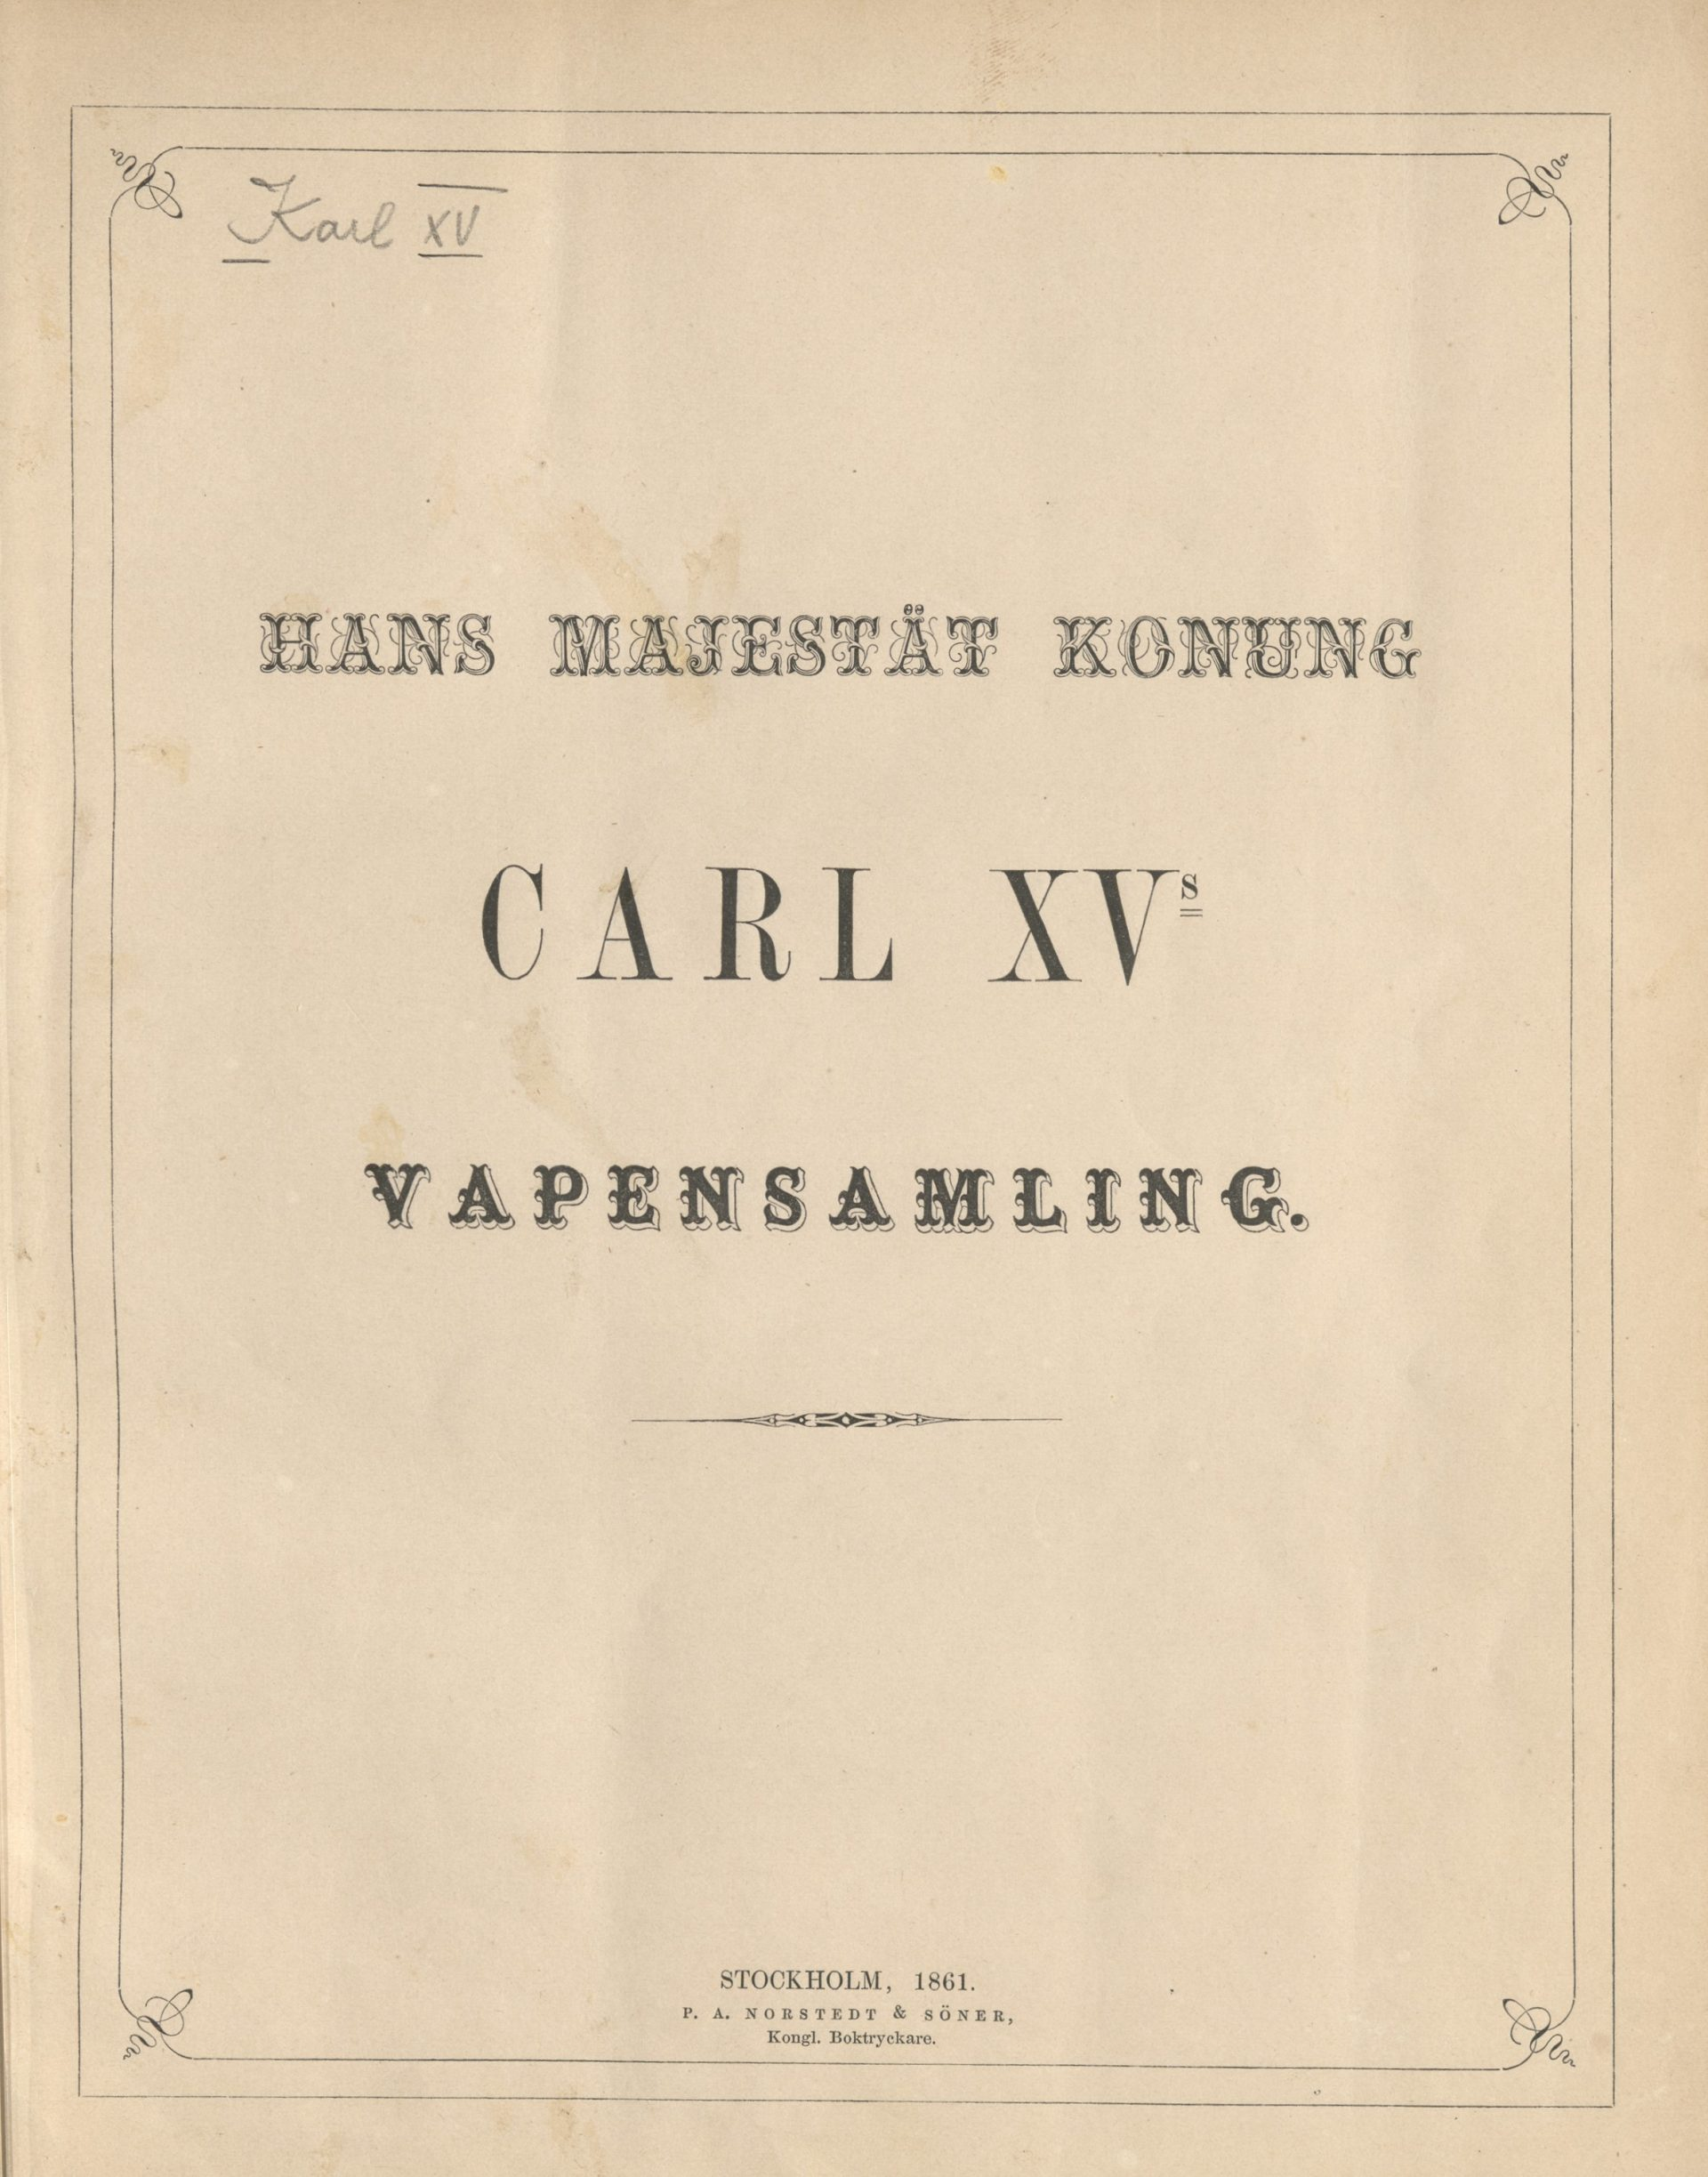 Title page of Karl XVs collection of arms and armour.